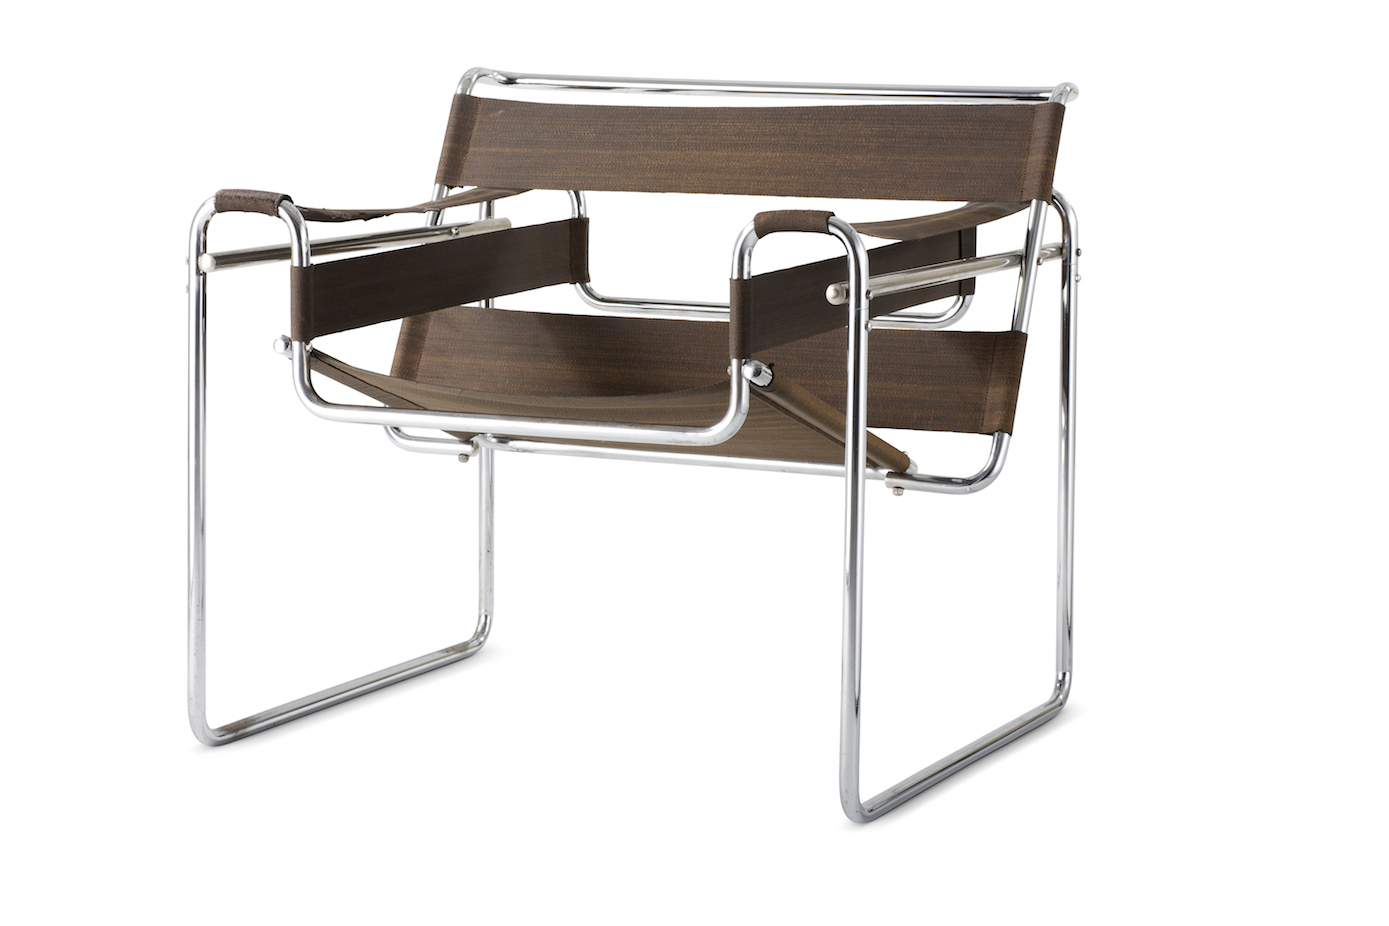 Marcel Breuer, lounge chair B 3 (known as Wassily Chair), 1925. Collection Vitra Design Museum. Photo: © Vitra Design Museum, Jürgen Hans.